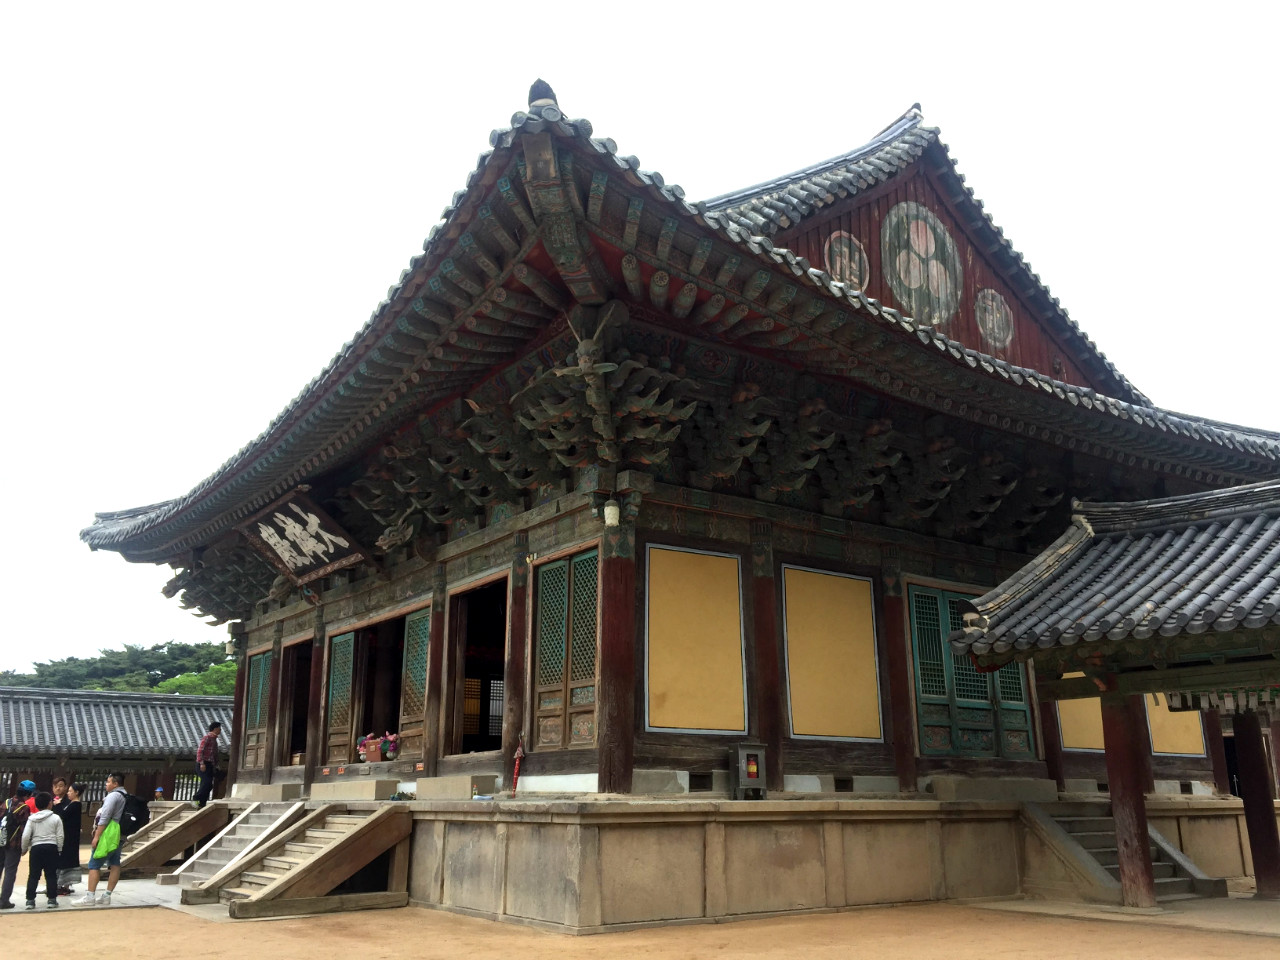 HALL OF GREAT ENLIGHTENMENT. Daeungjeon Hall is the main hall in the complex. Located near it are the Dabotap and Seokgatap pagodas.